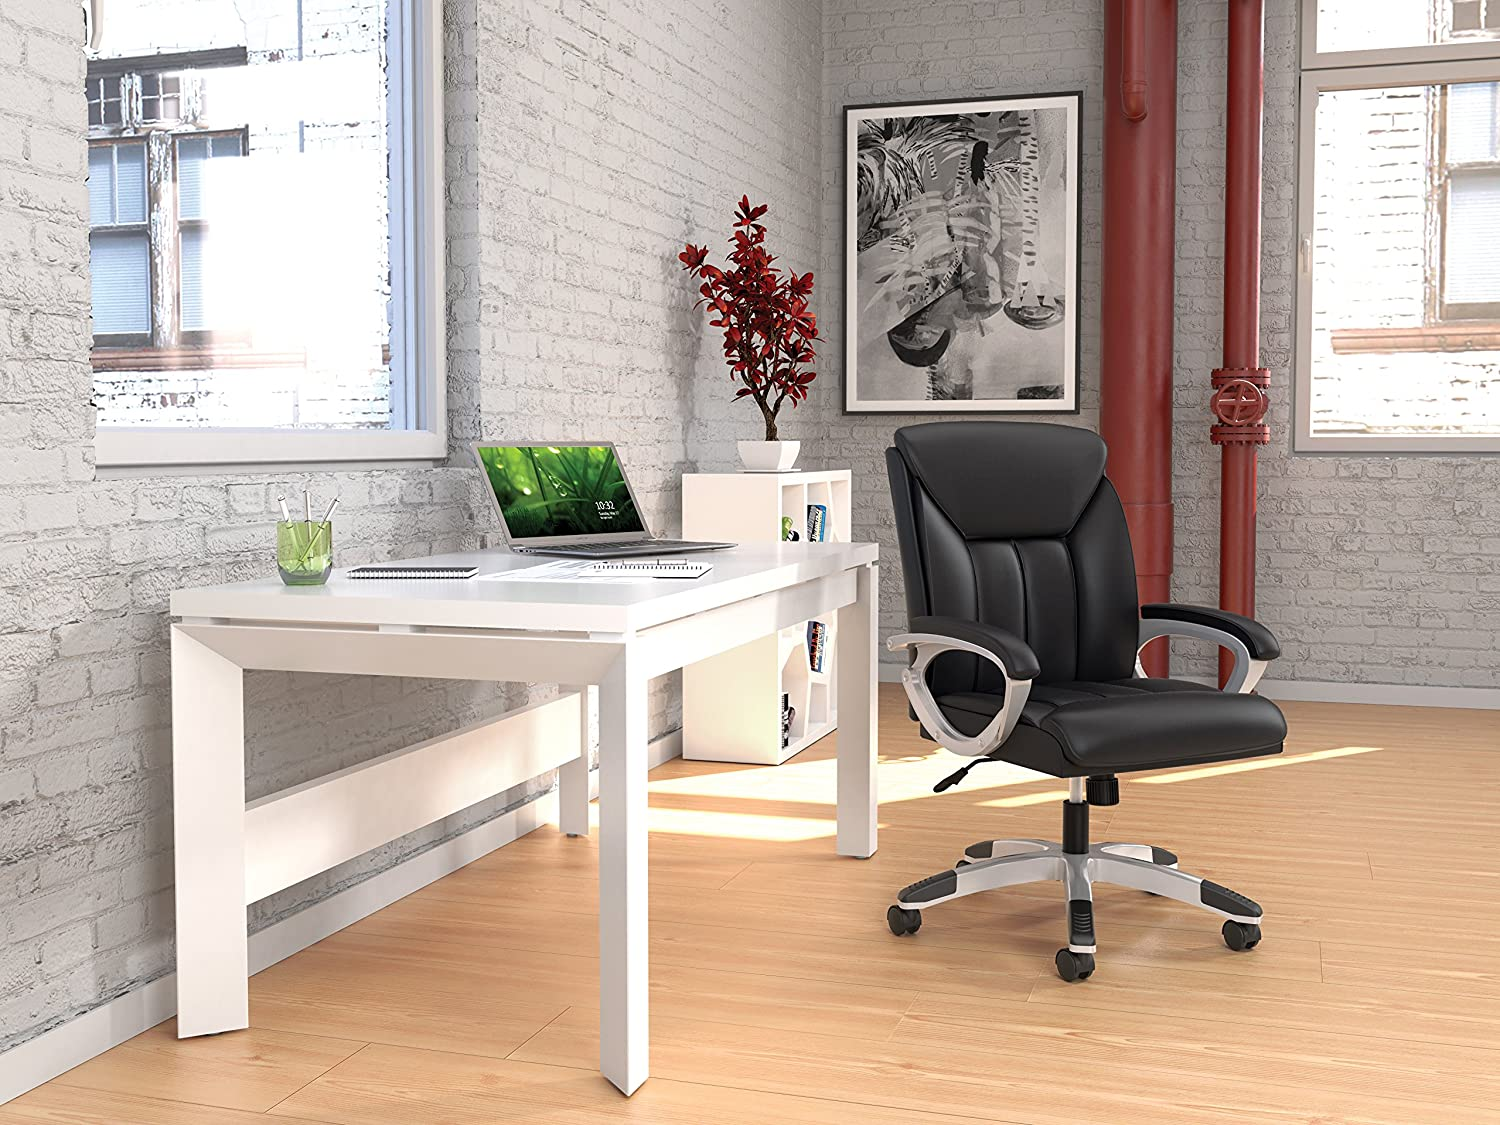 Fdl Desk Chair fdl office chairs factory fdl office chairs